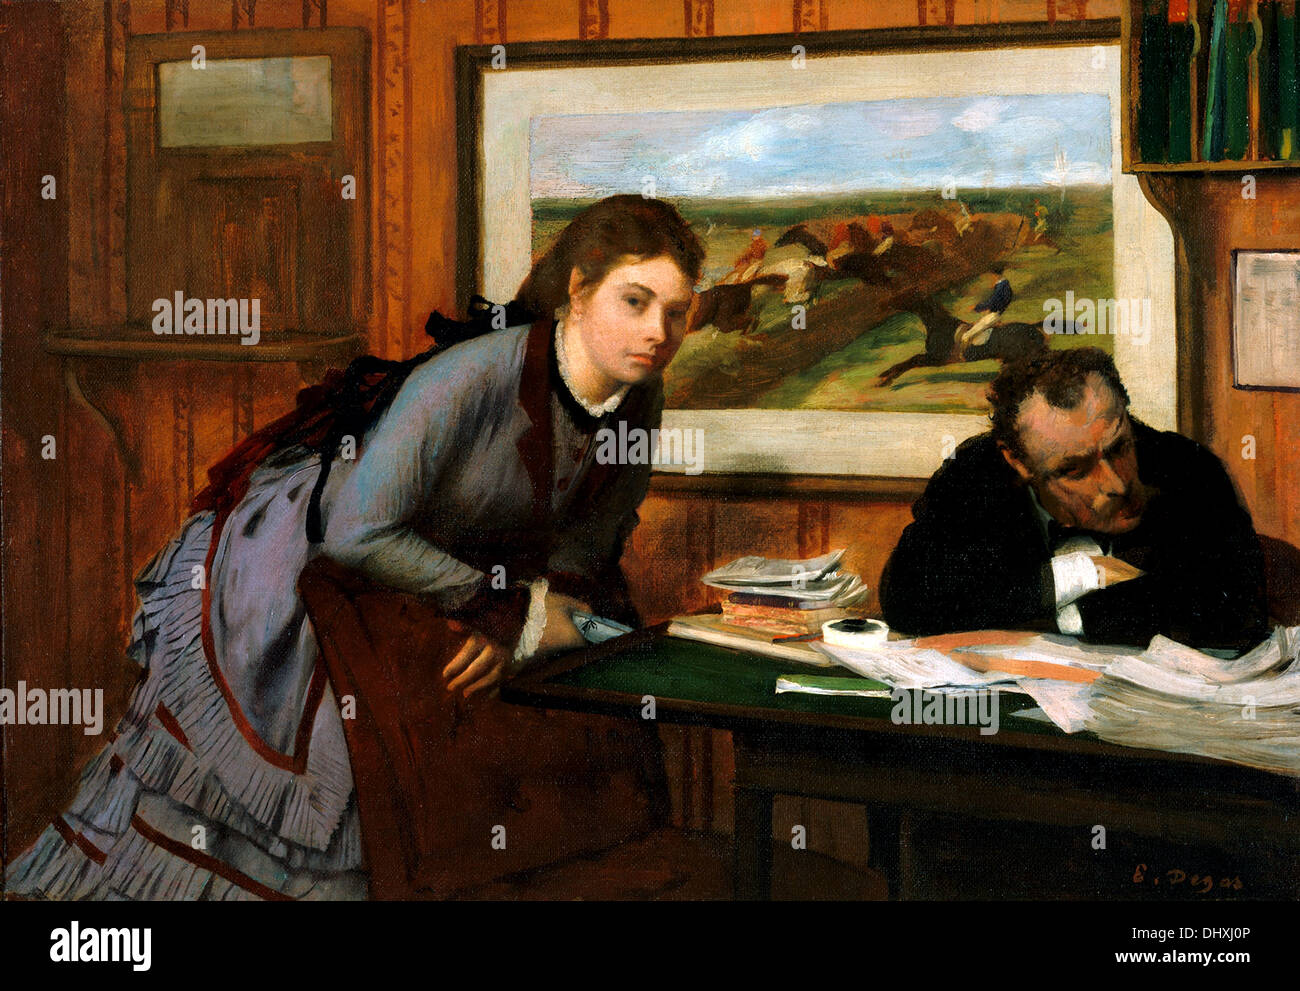 Sulking - by Edgar Degas, 1870 - Stock Image